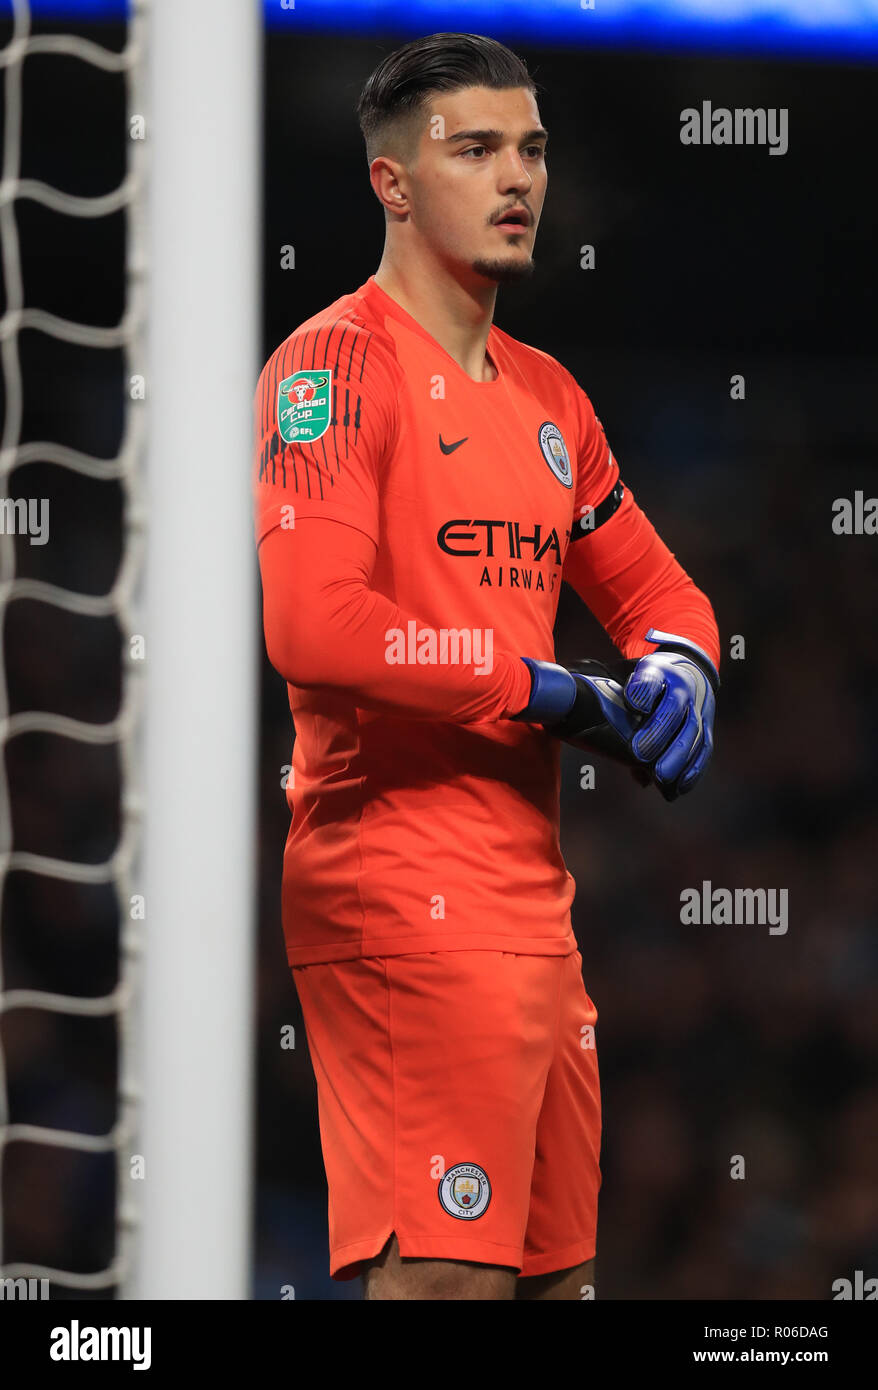 7ca627db6 Manchester City s Arijanet Muric during the Carabao Cup